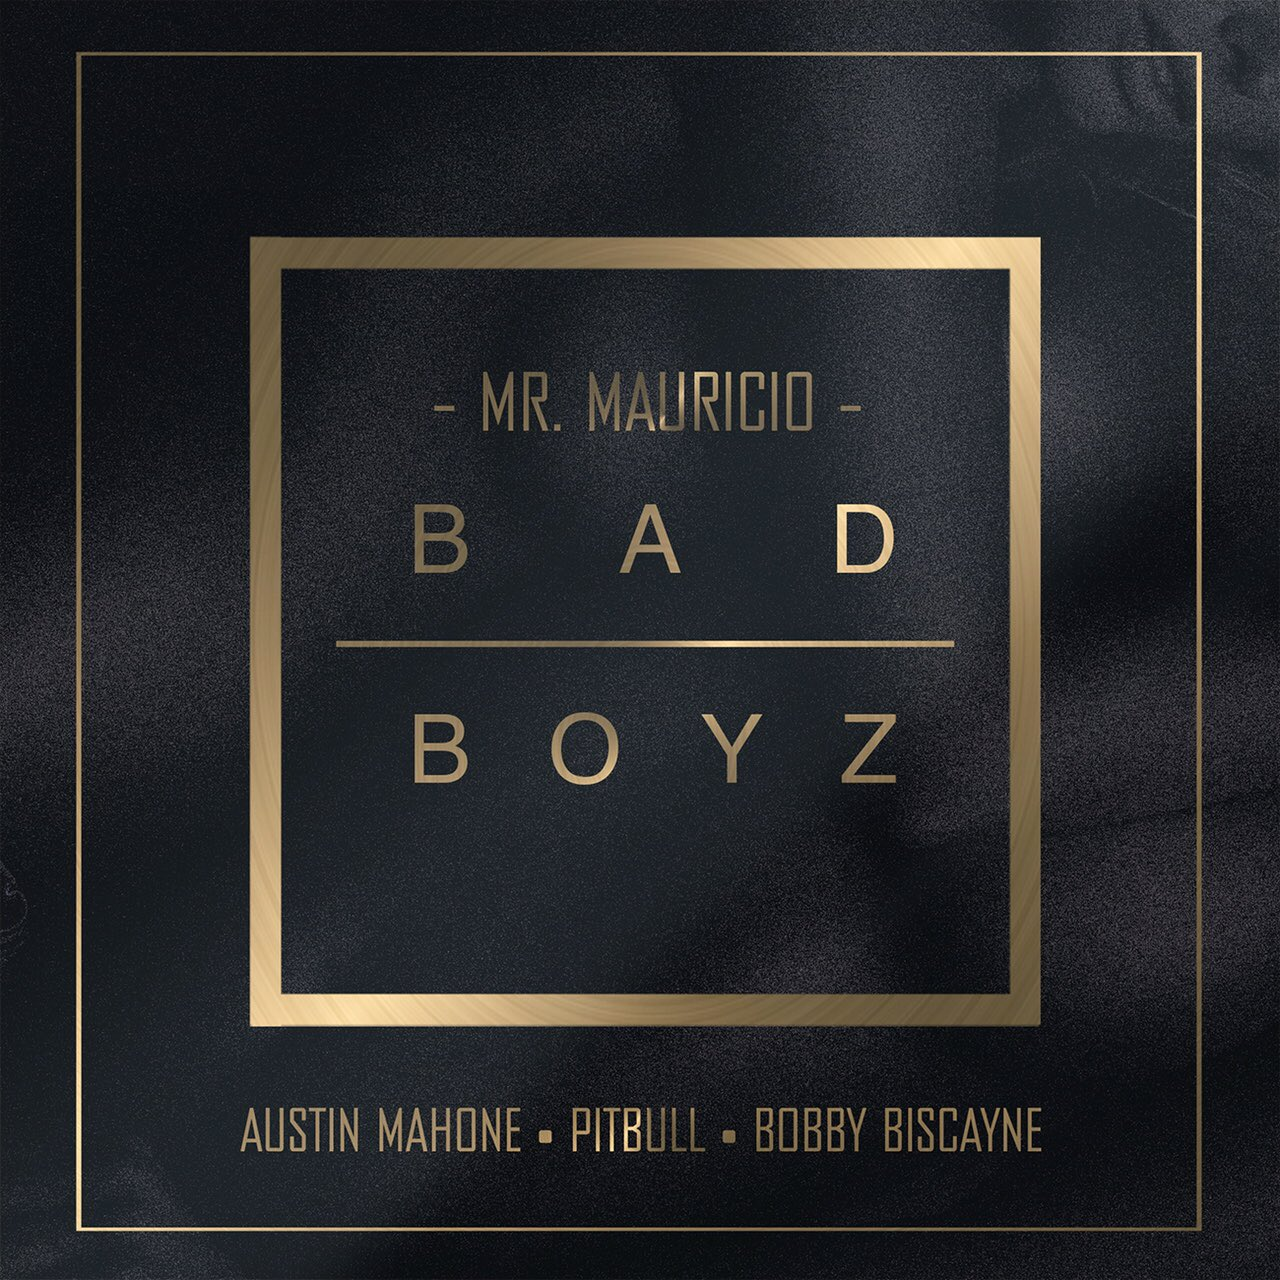 Get ready for #BadBoyz @MRMAURICIO @BobbyBiscayne @AustinMahone and #MrWorldwide   https://t.co/c59Sxqpthr https://t.co/Sy9jMcqFRJ